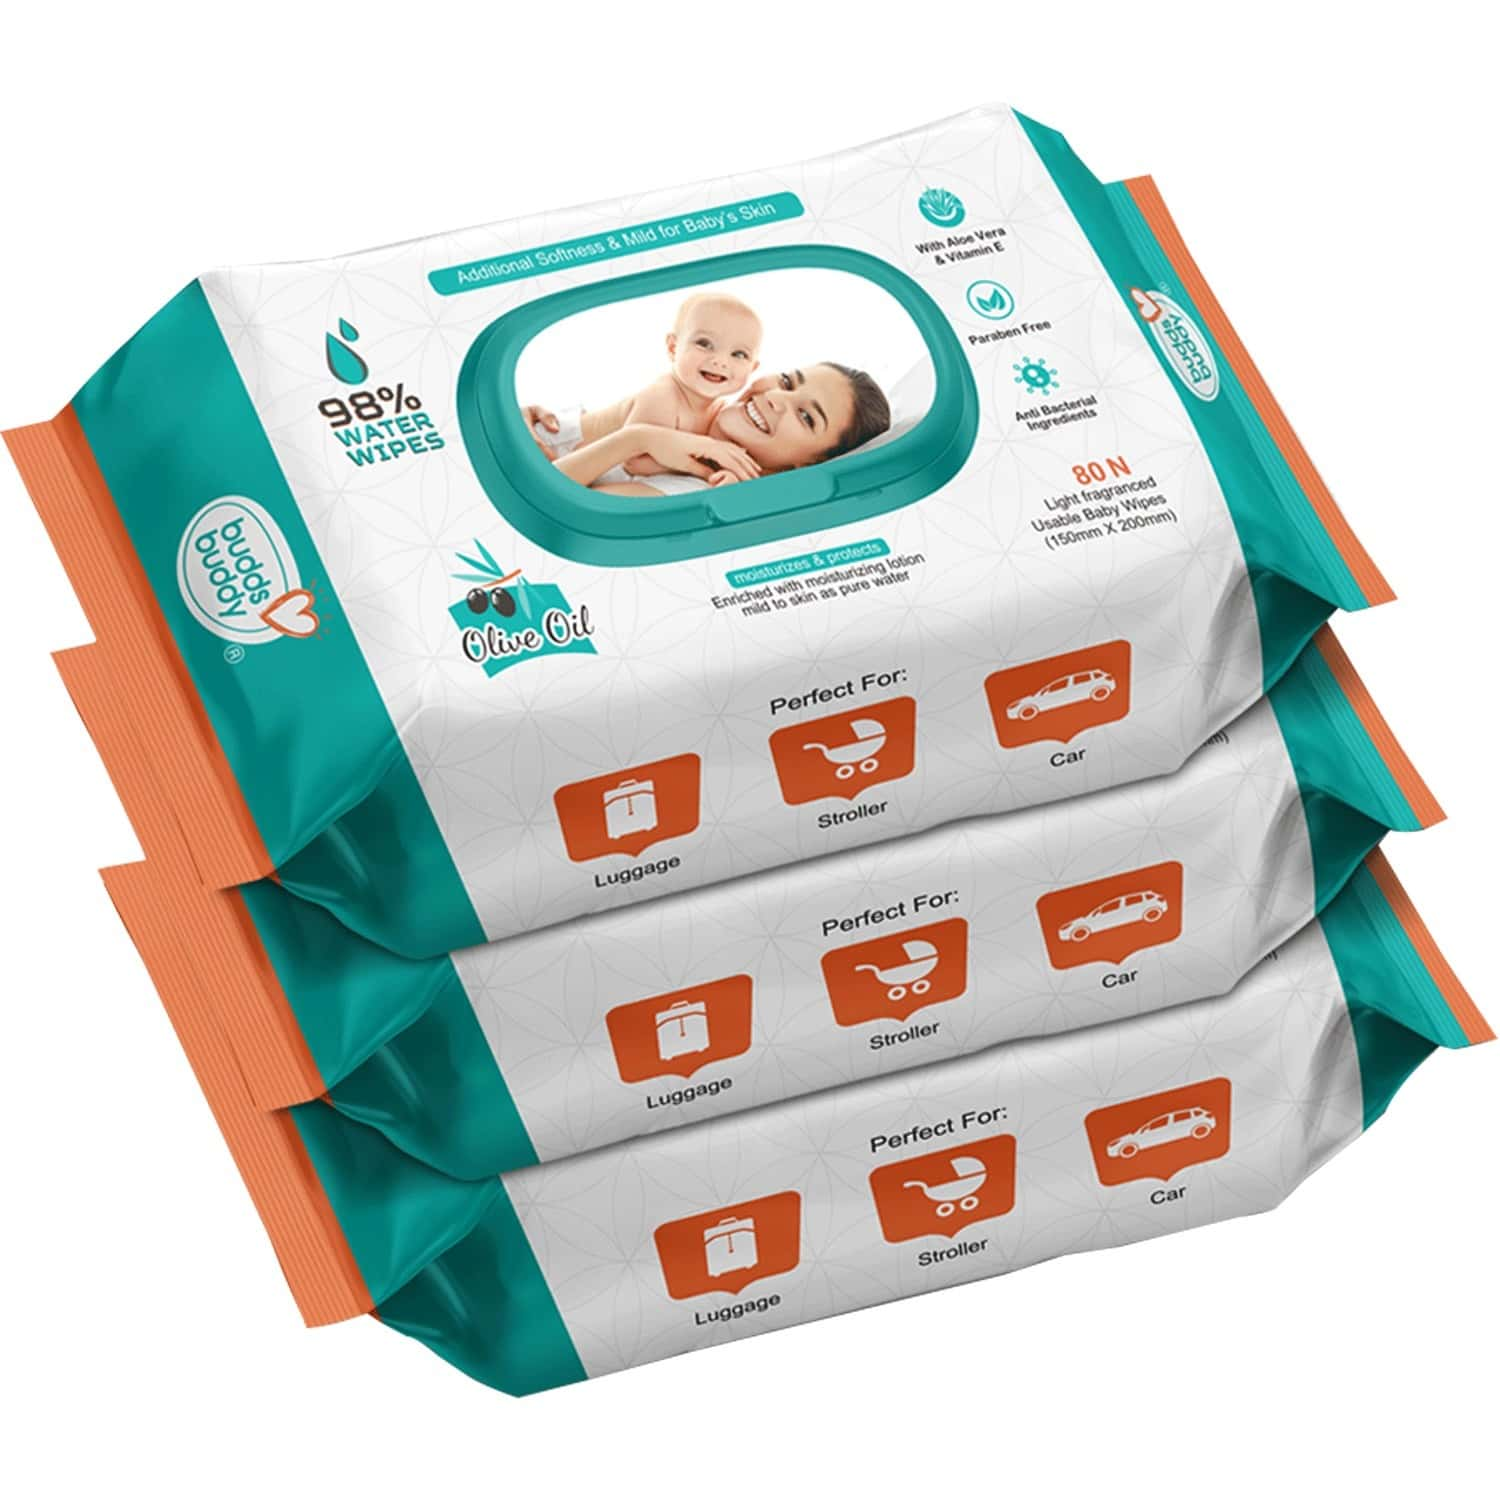 Buddsbuddy Combo Of 3 Skincare Baby Wet Wipes With Lid Contains Aloe Vera- 80 Pieces Each